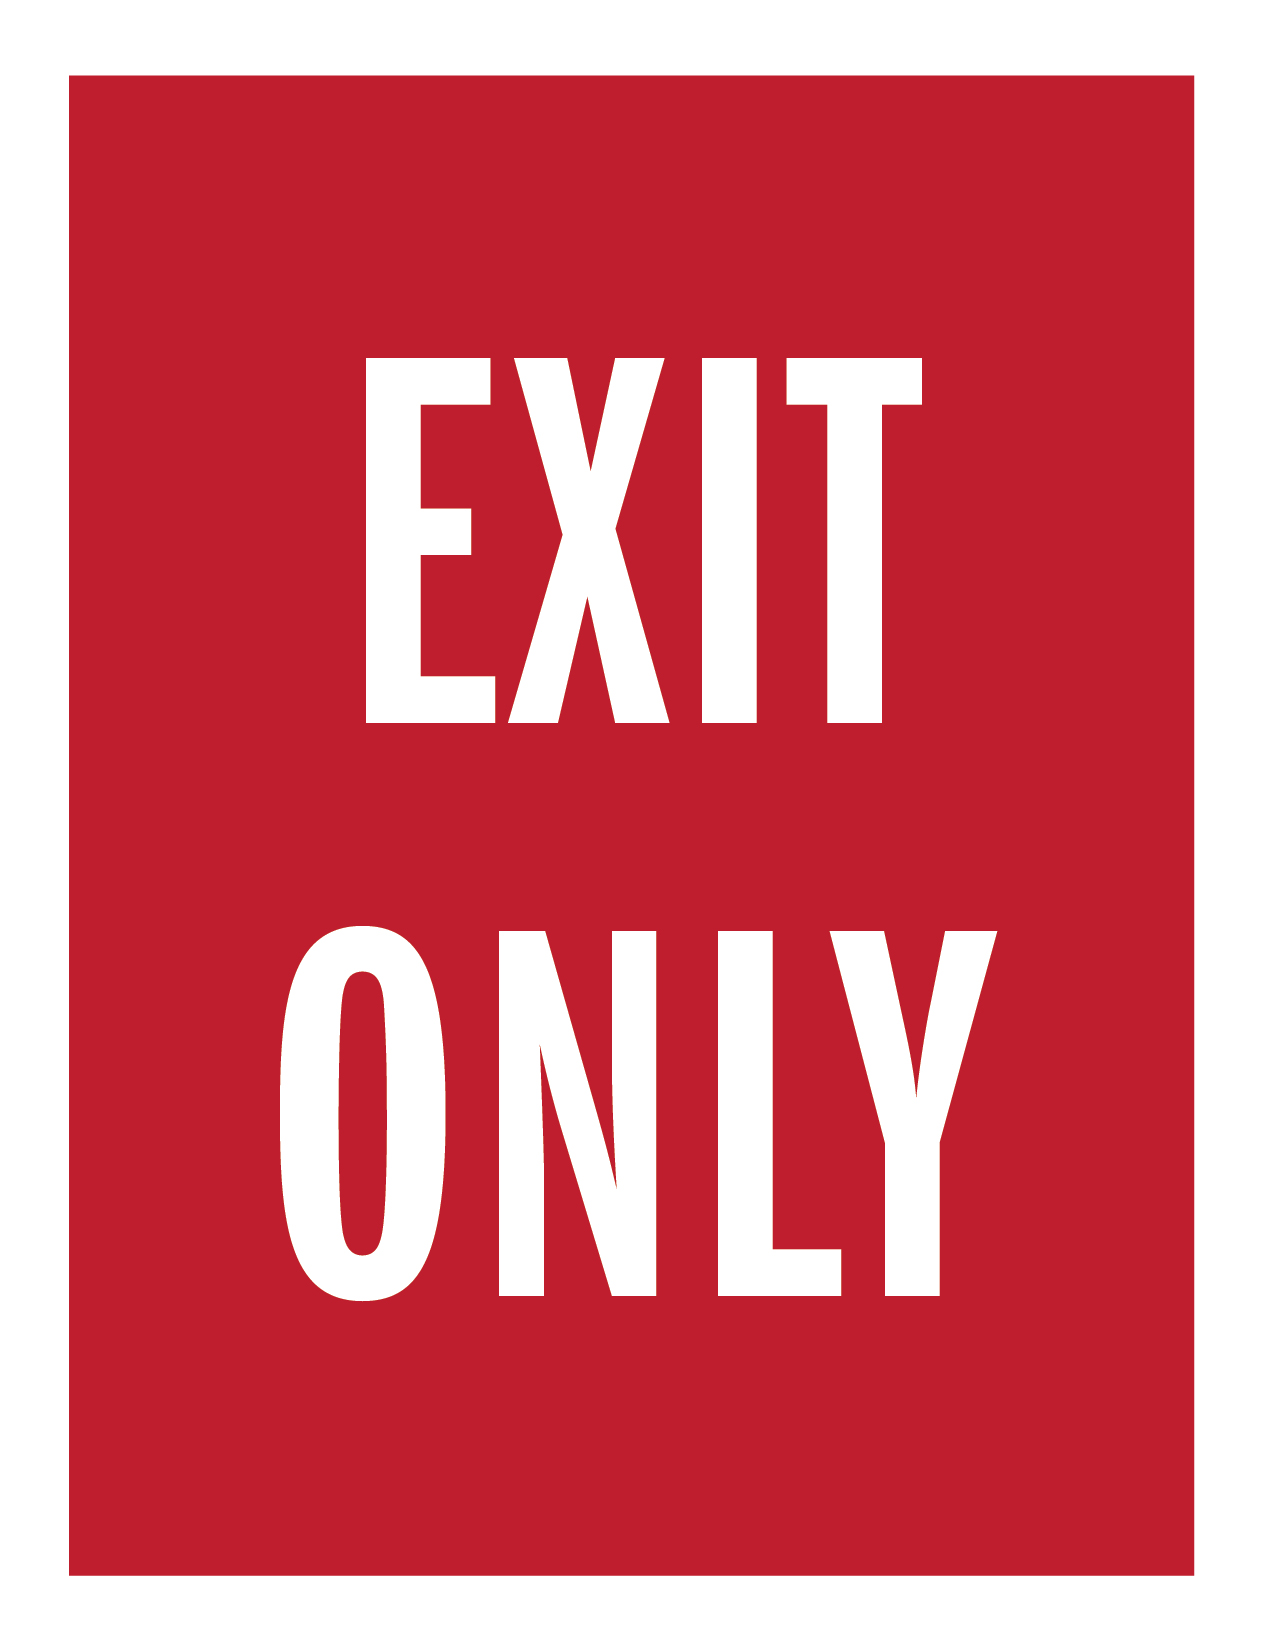 red exit only letter-size sign